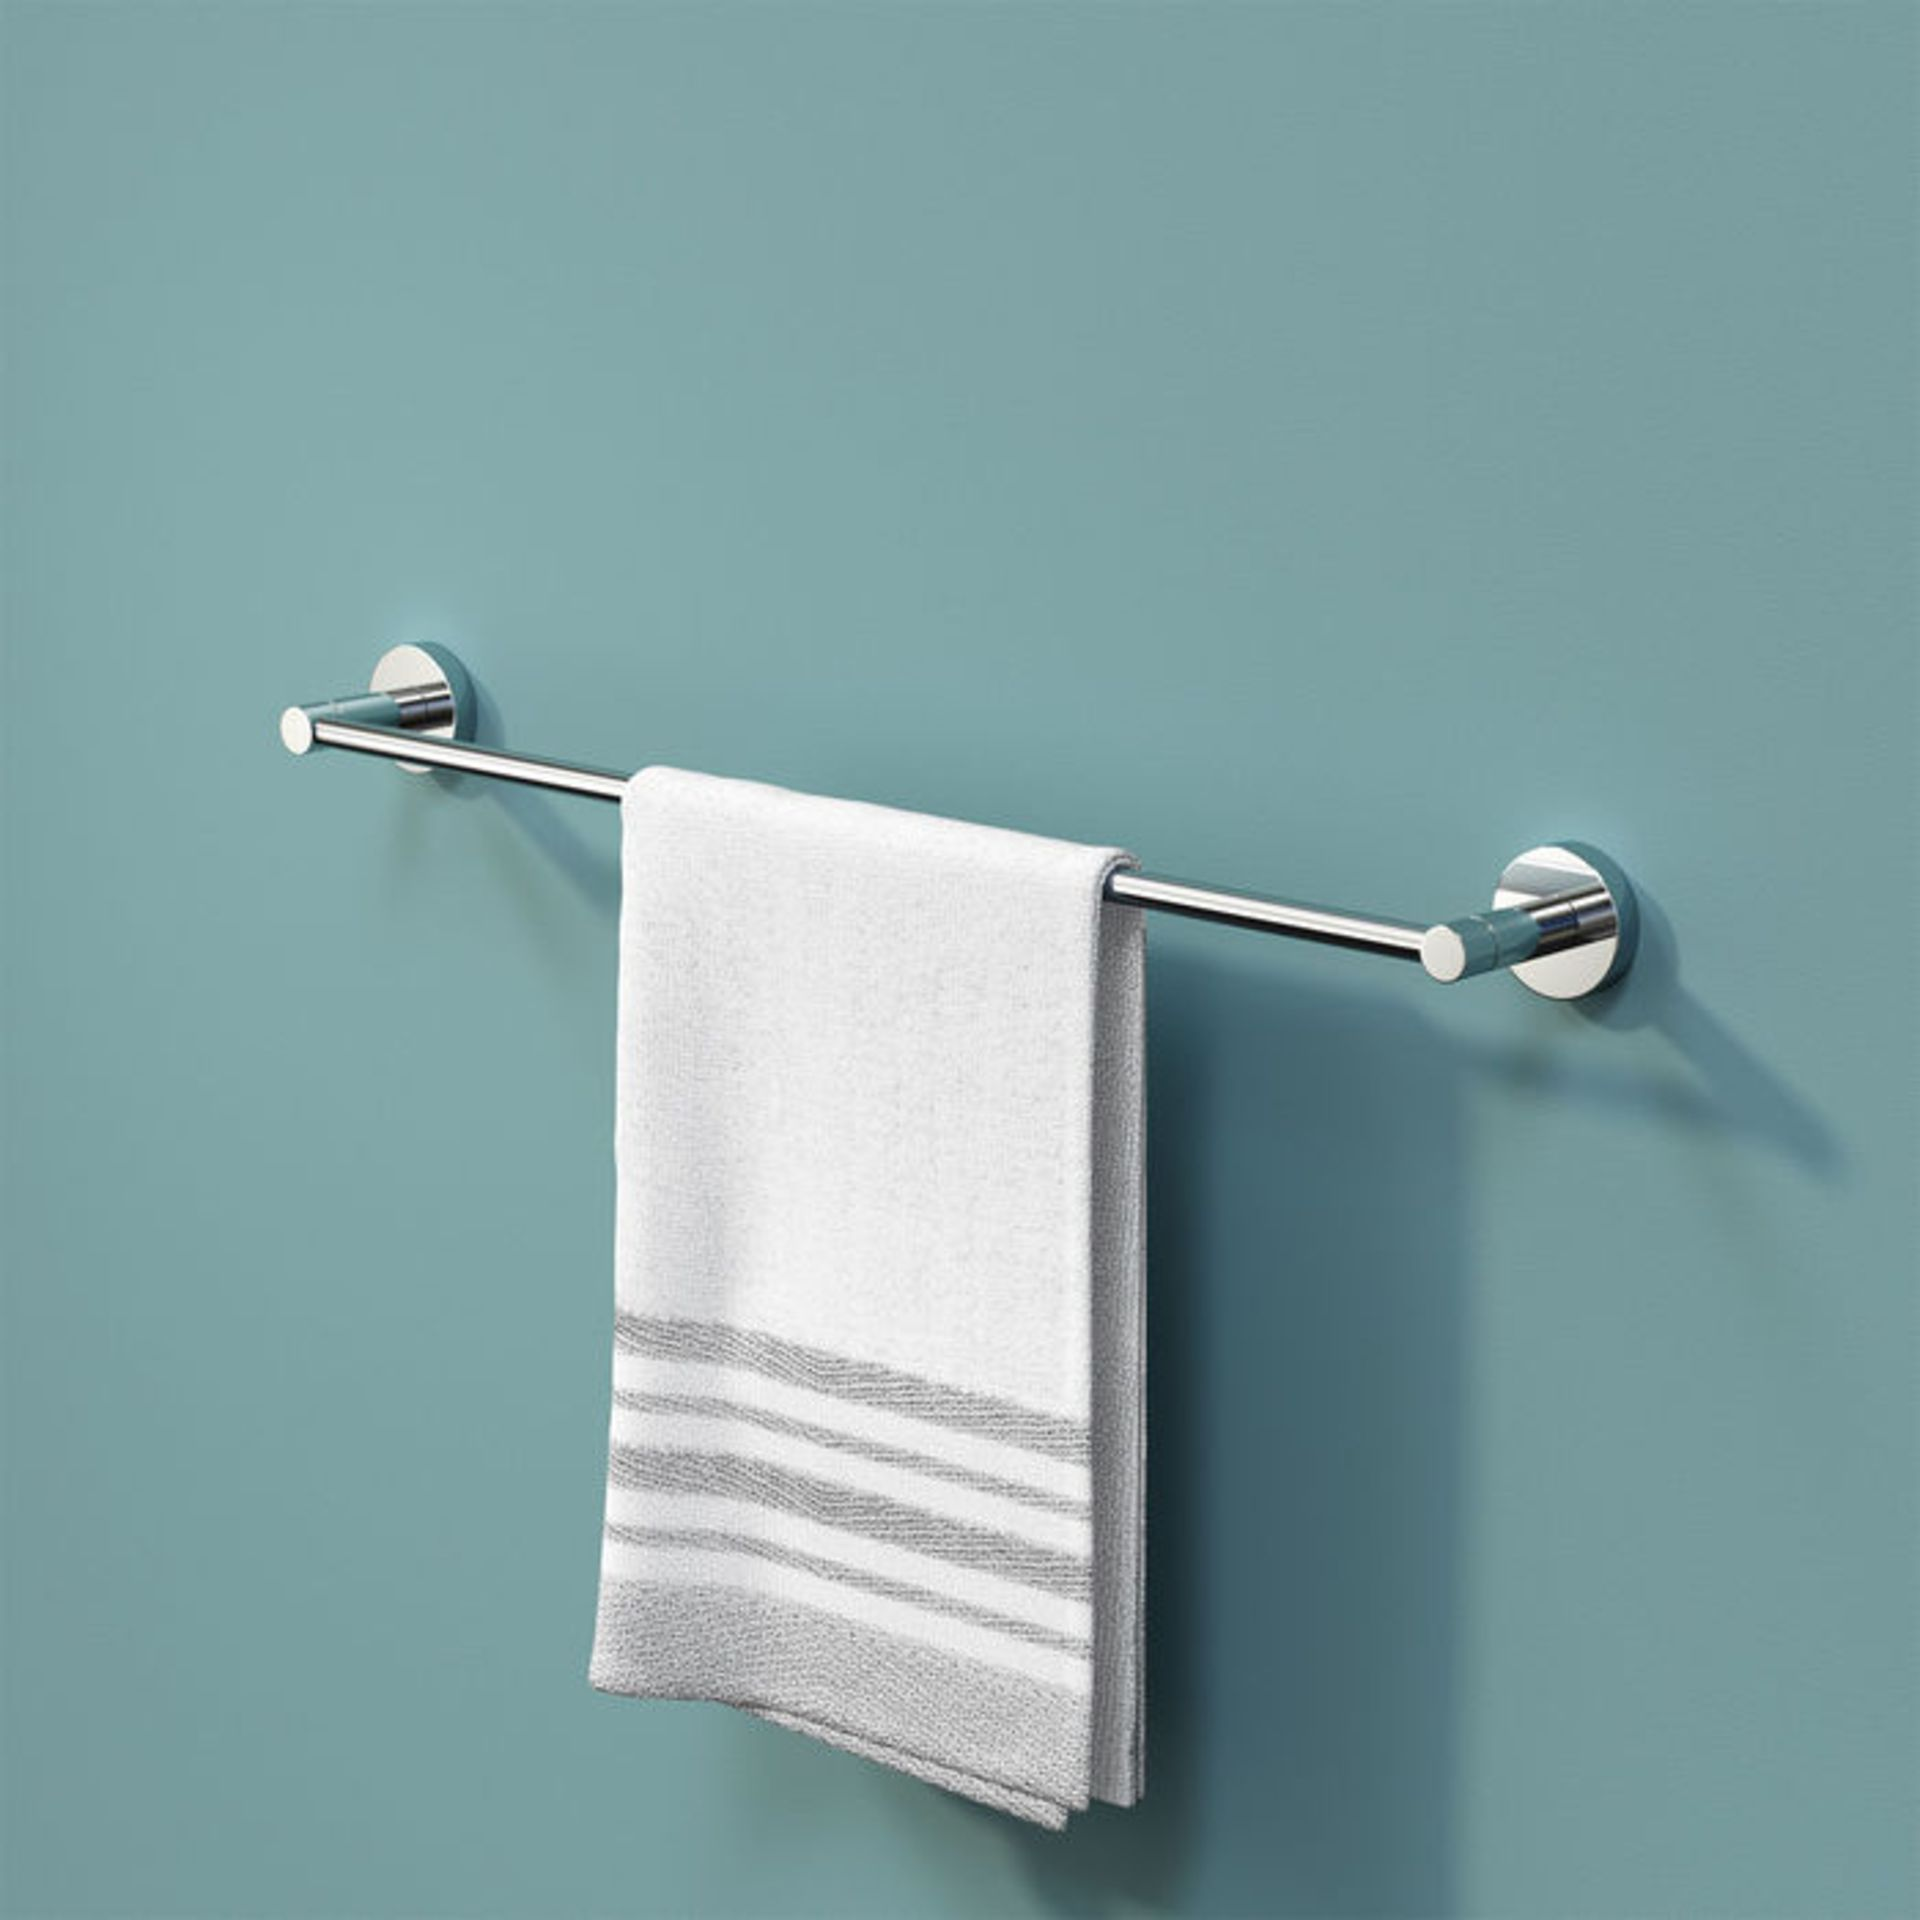 Lot 48 - (NF116) Finsbury Towel Rail. Designed to conceal all fittings Completes your bathroom with a